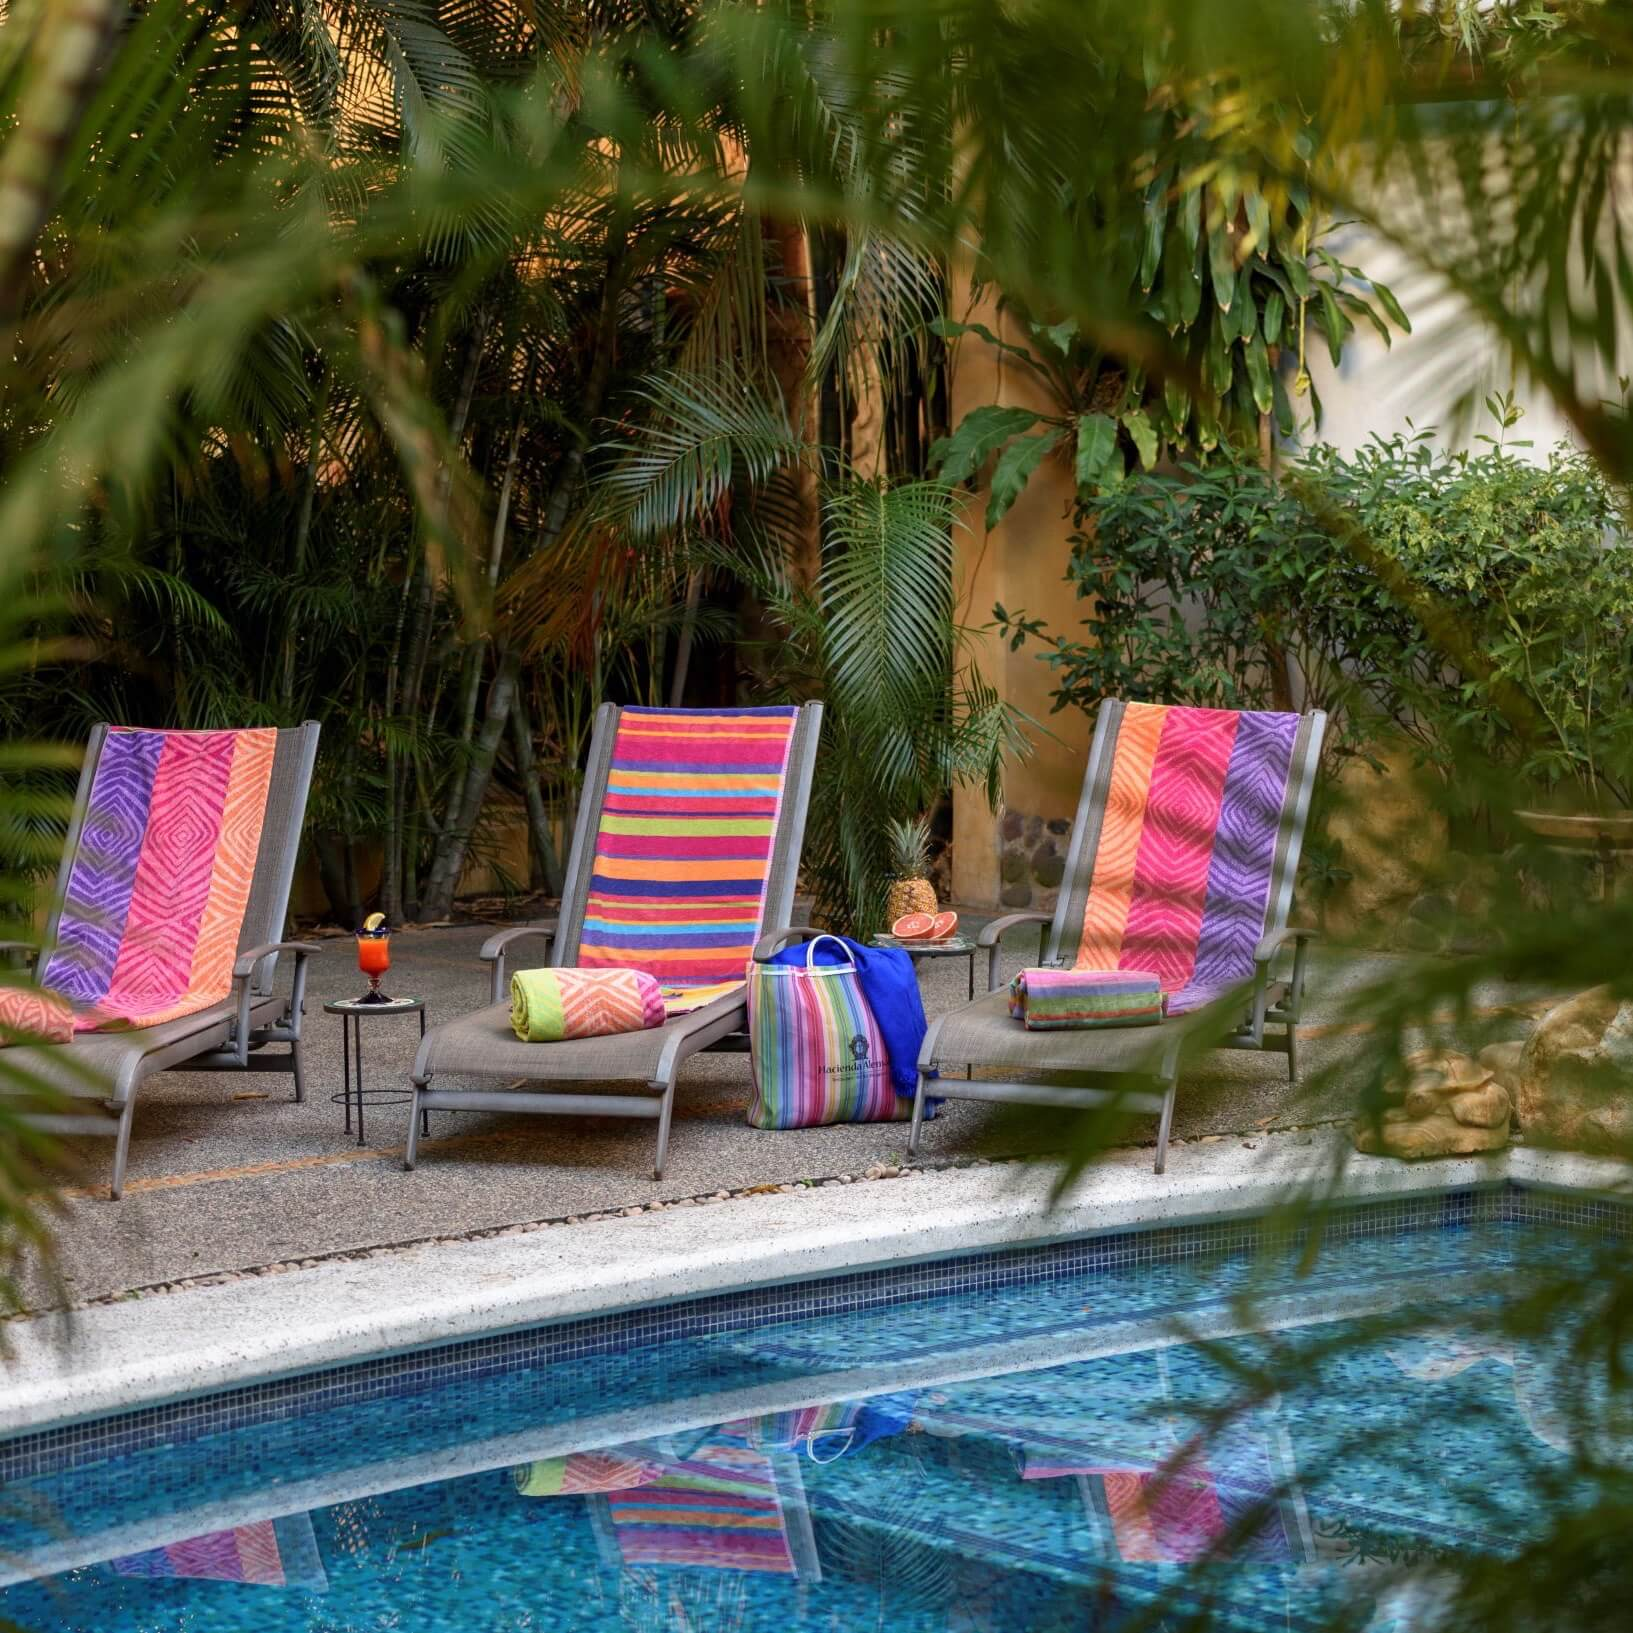 Three lounge chairs by the poolside